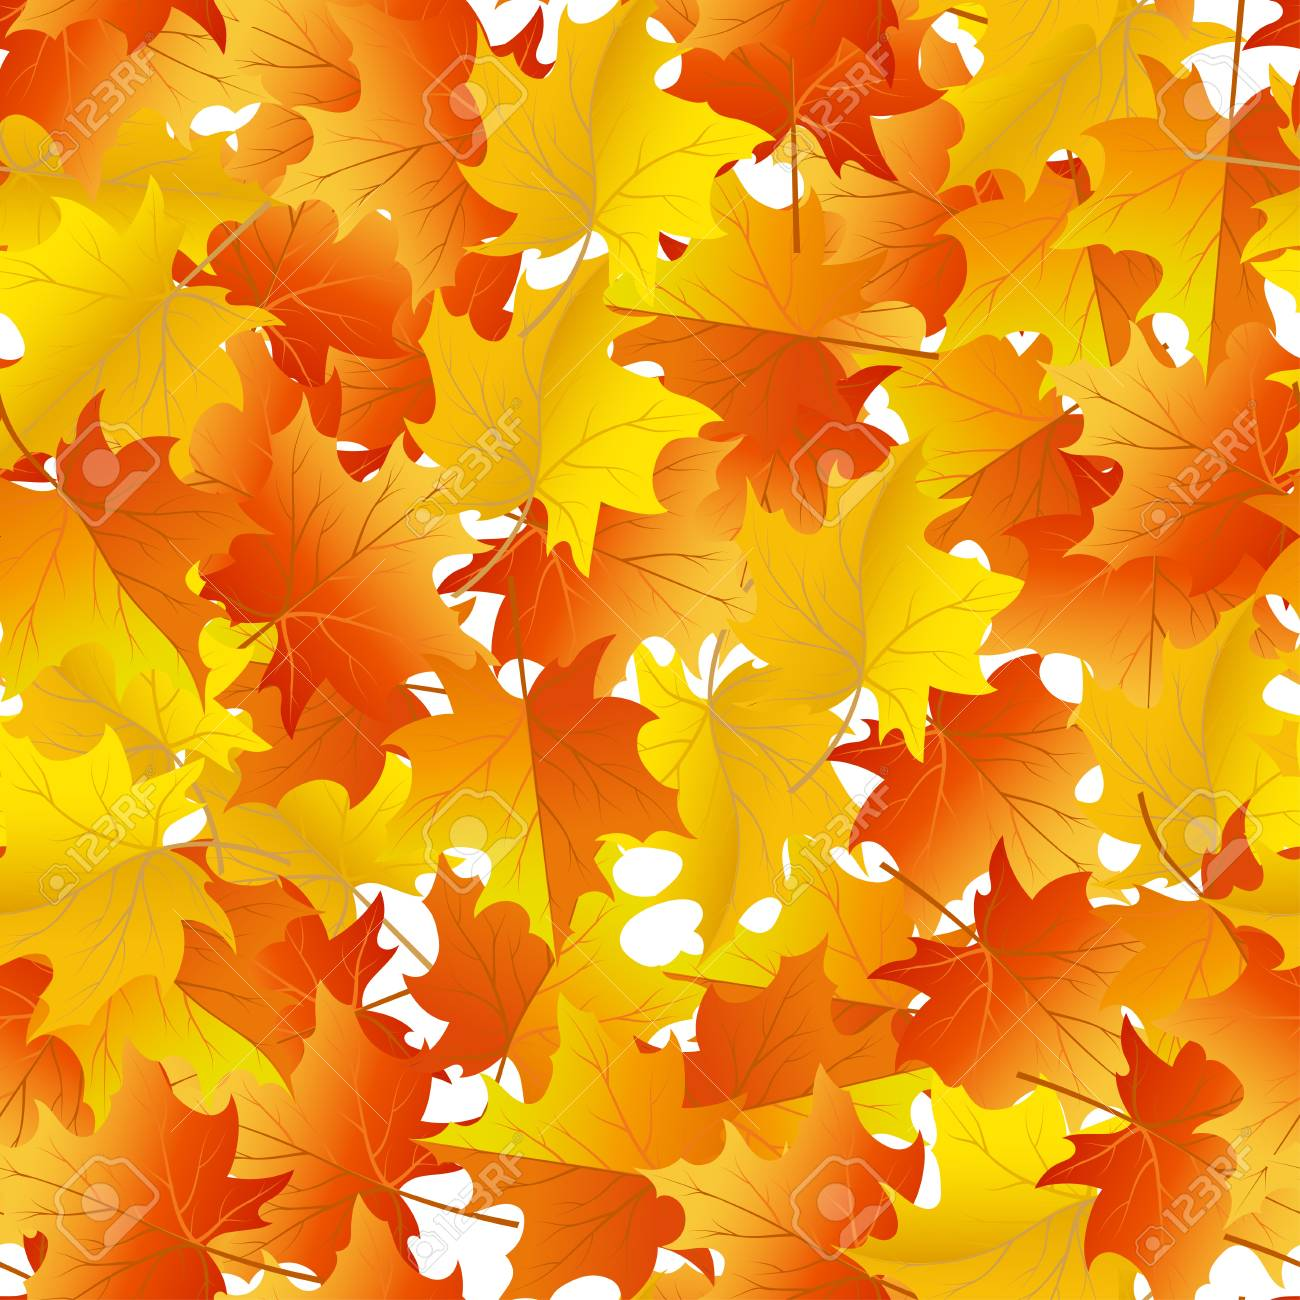 Autumn maples leaves seamless background. Stock Vector - 14791820